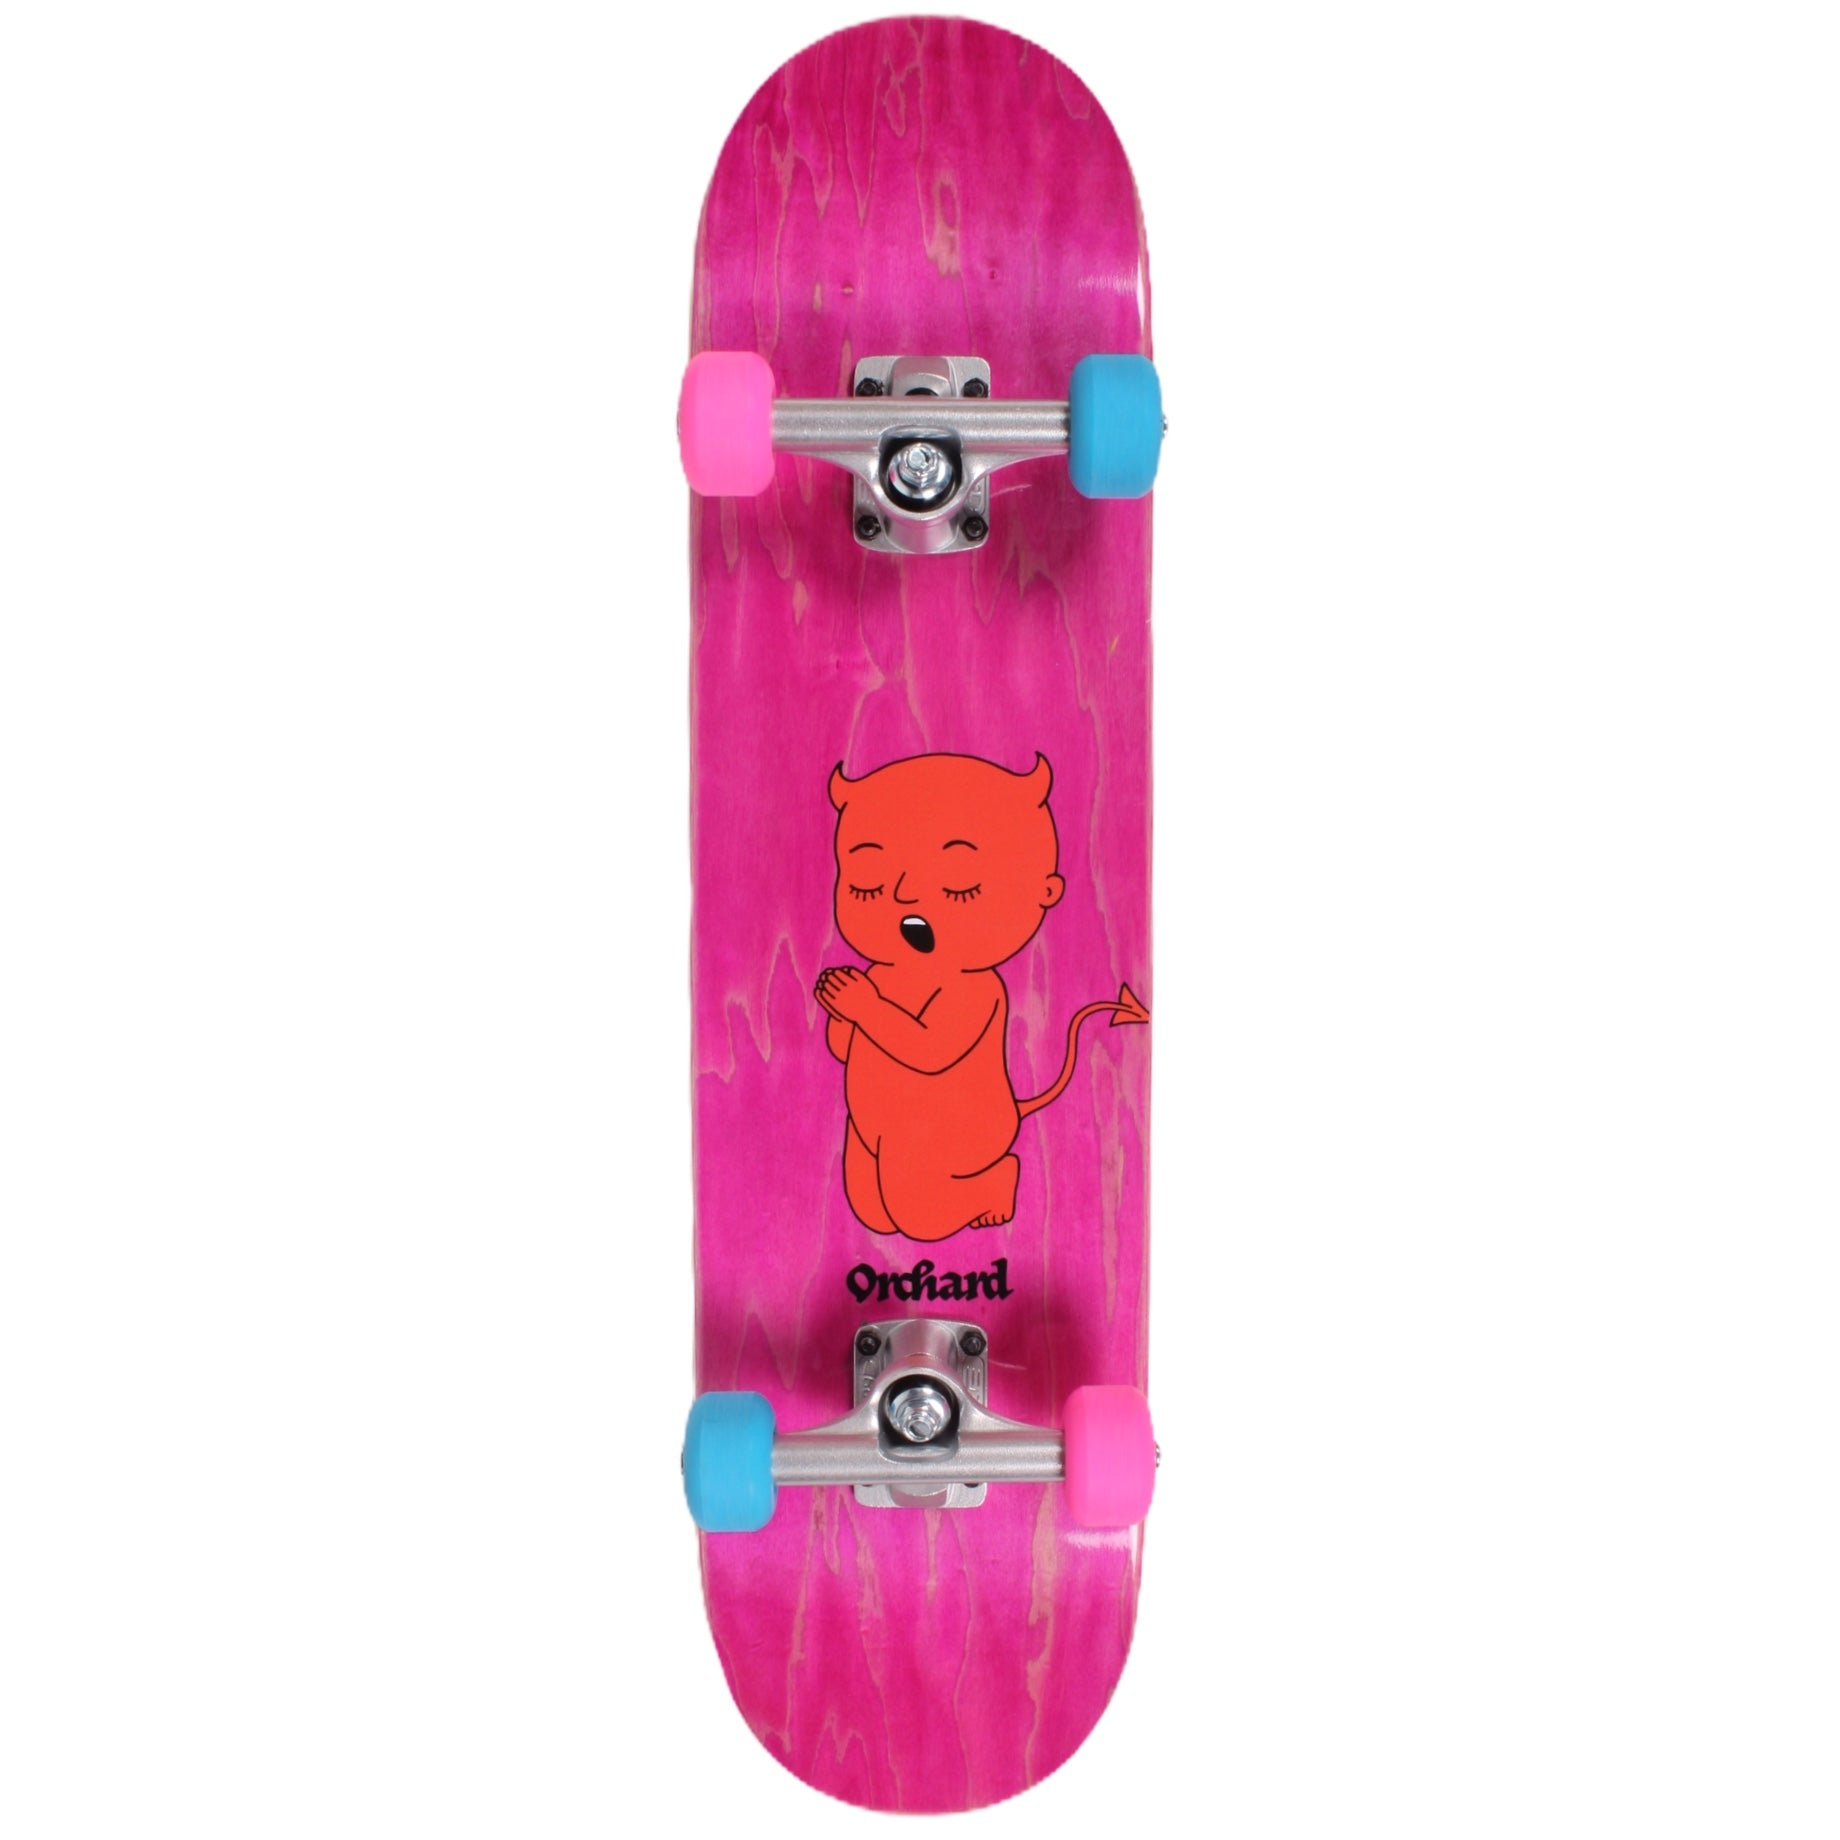 Orchard Thoughts & Prayers Complete Skateboard Standard 7.25 Mini Pink